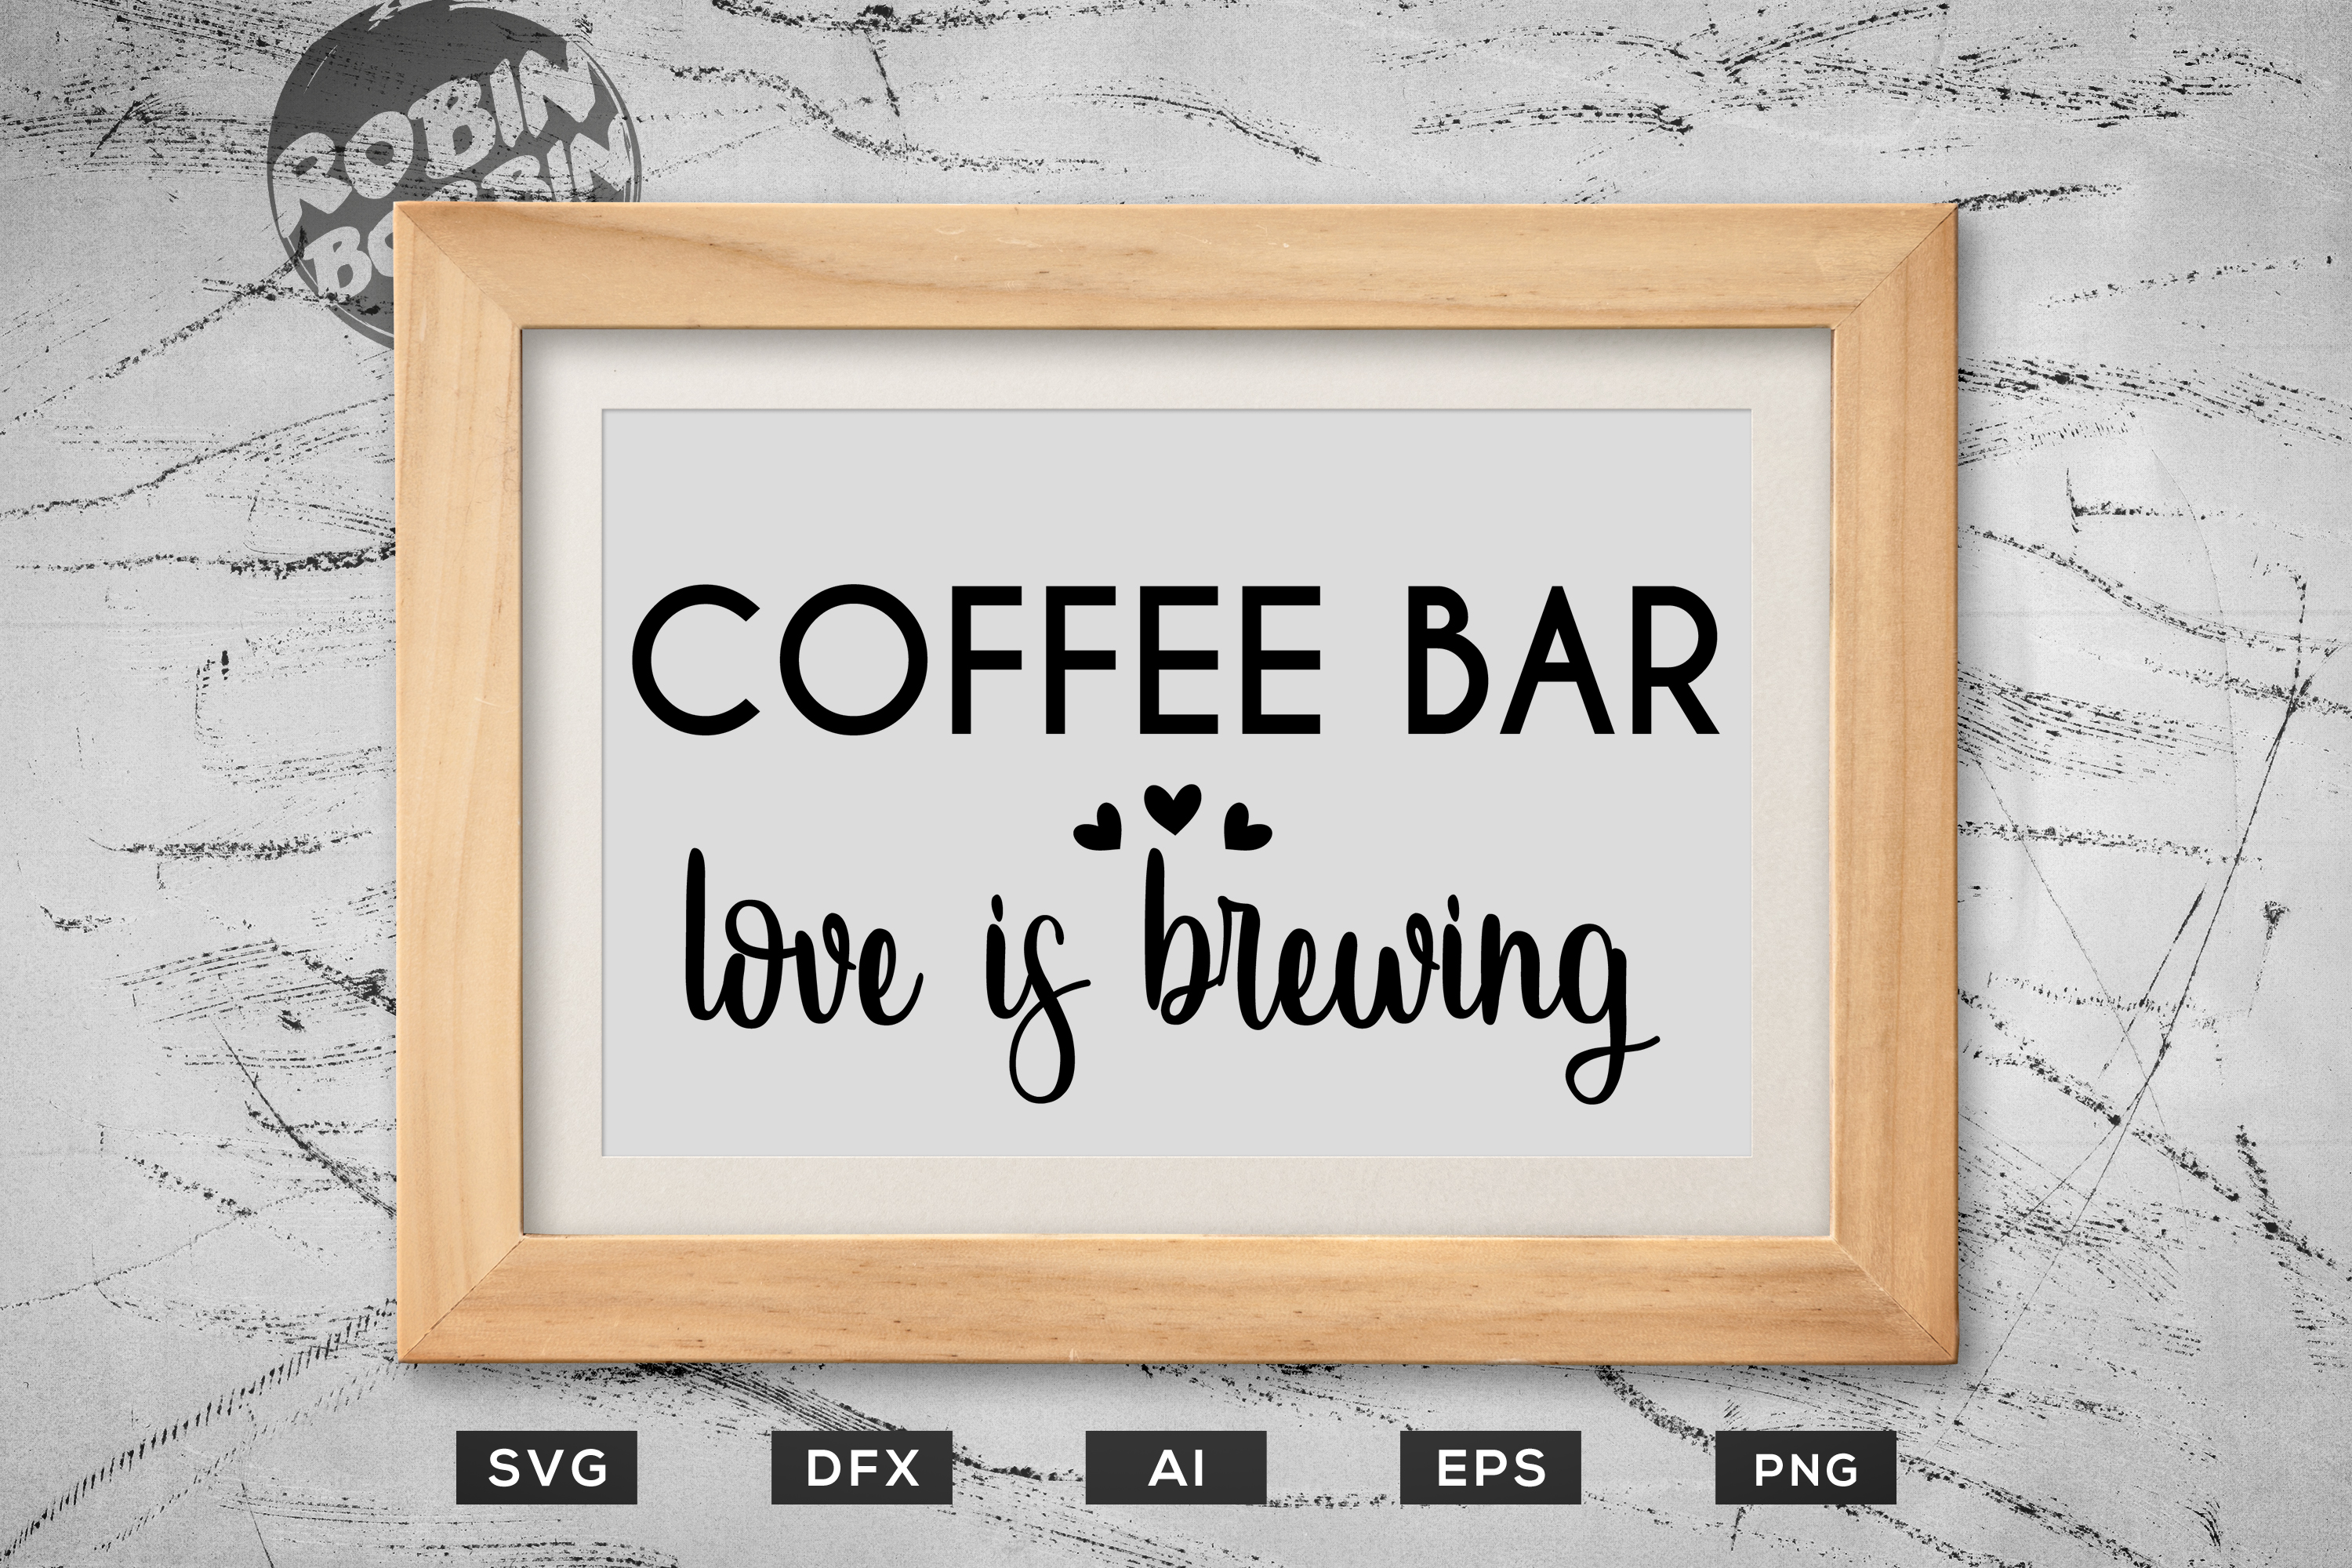 Download Free Coffee Bar Love Is Brewing Poster Graphic By Robinbobbindesign for Cricut Explore, Silhouette and other cutting machines.